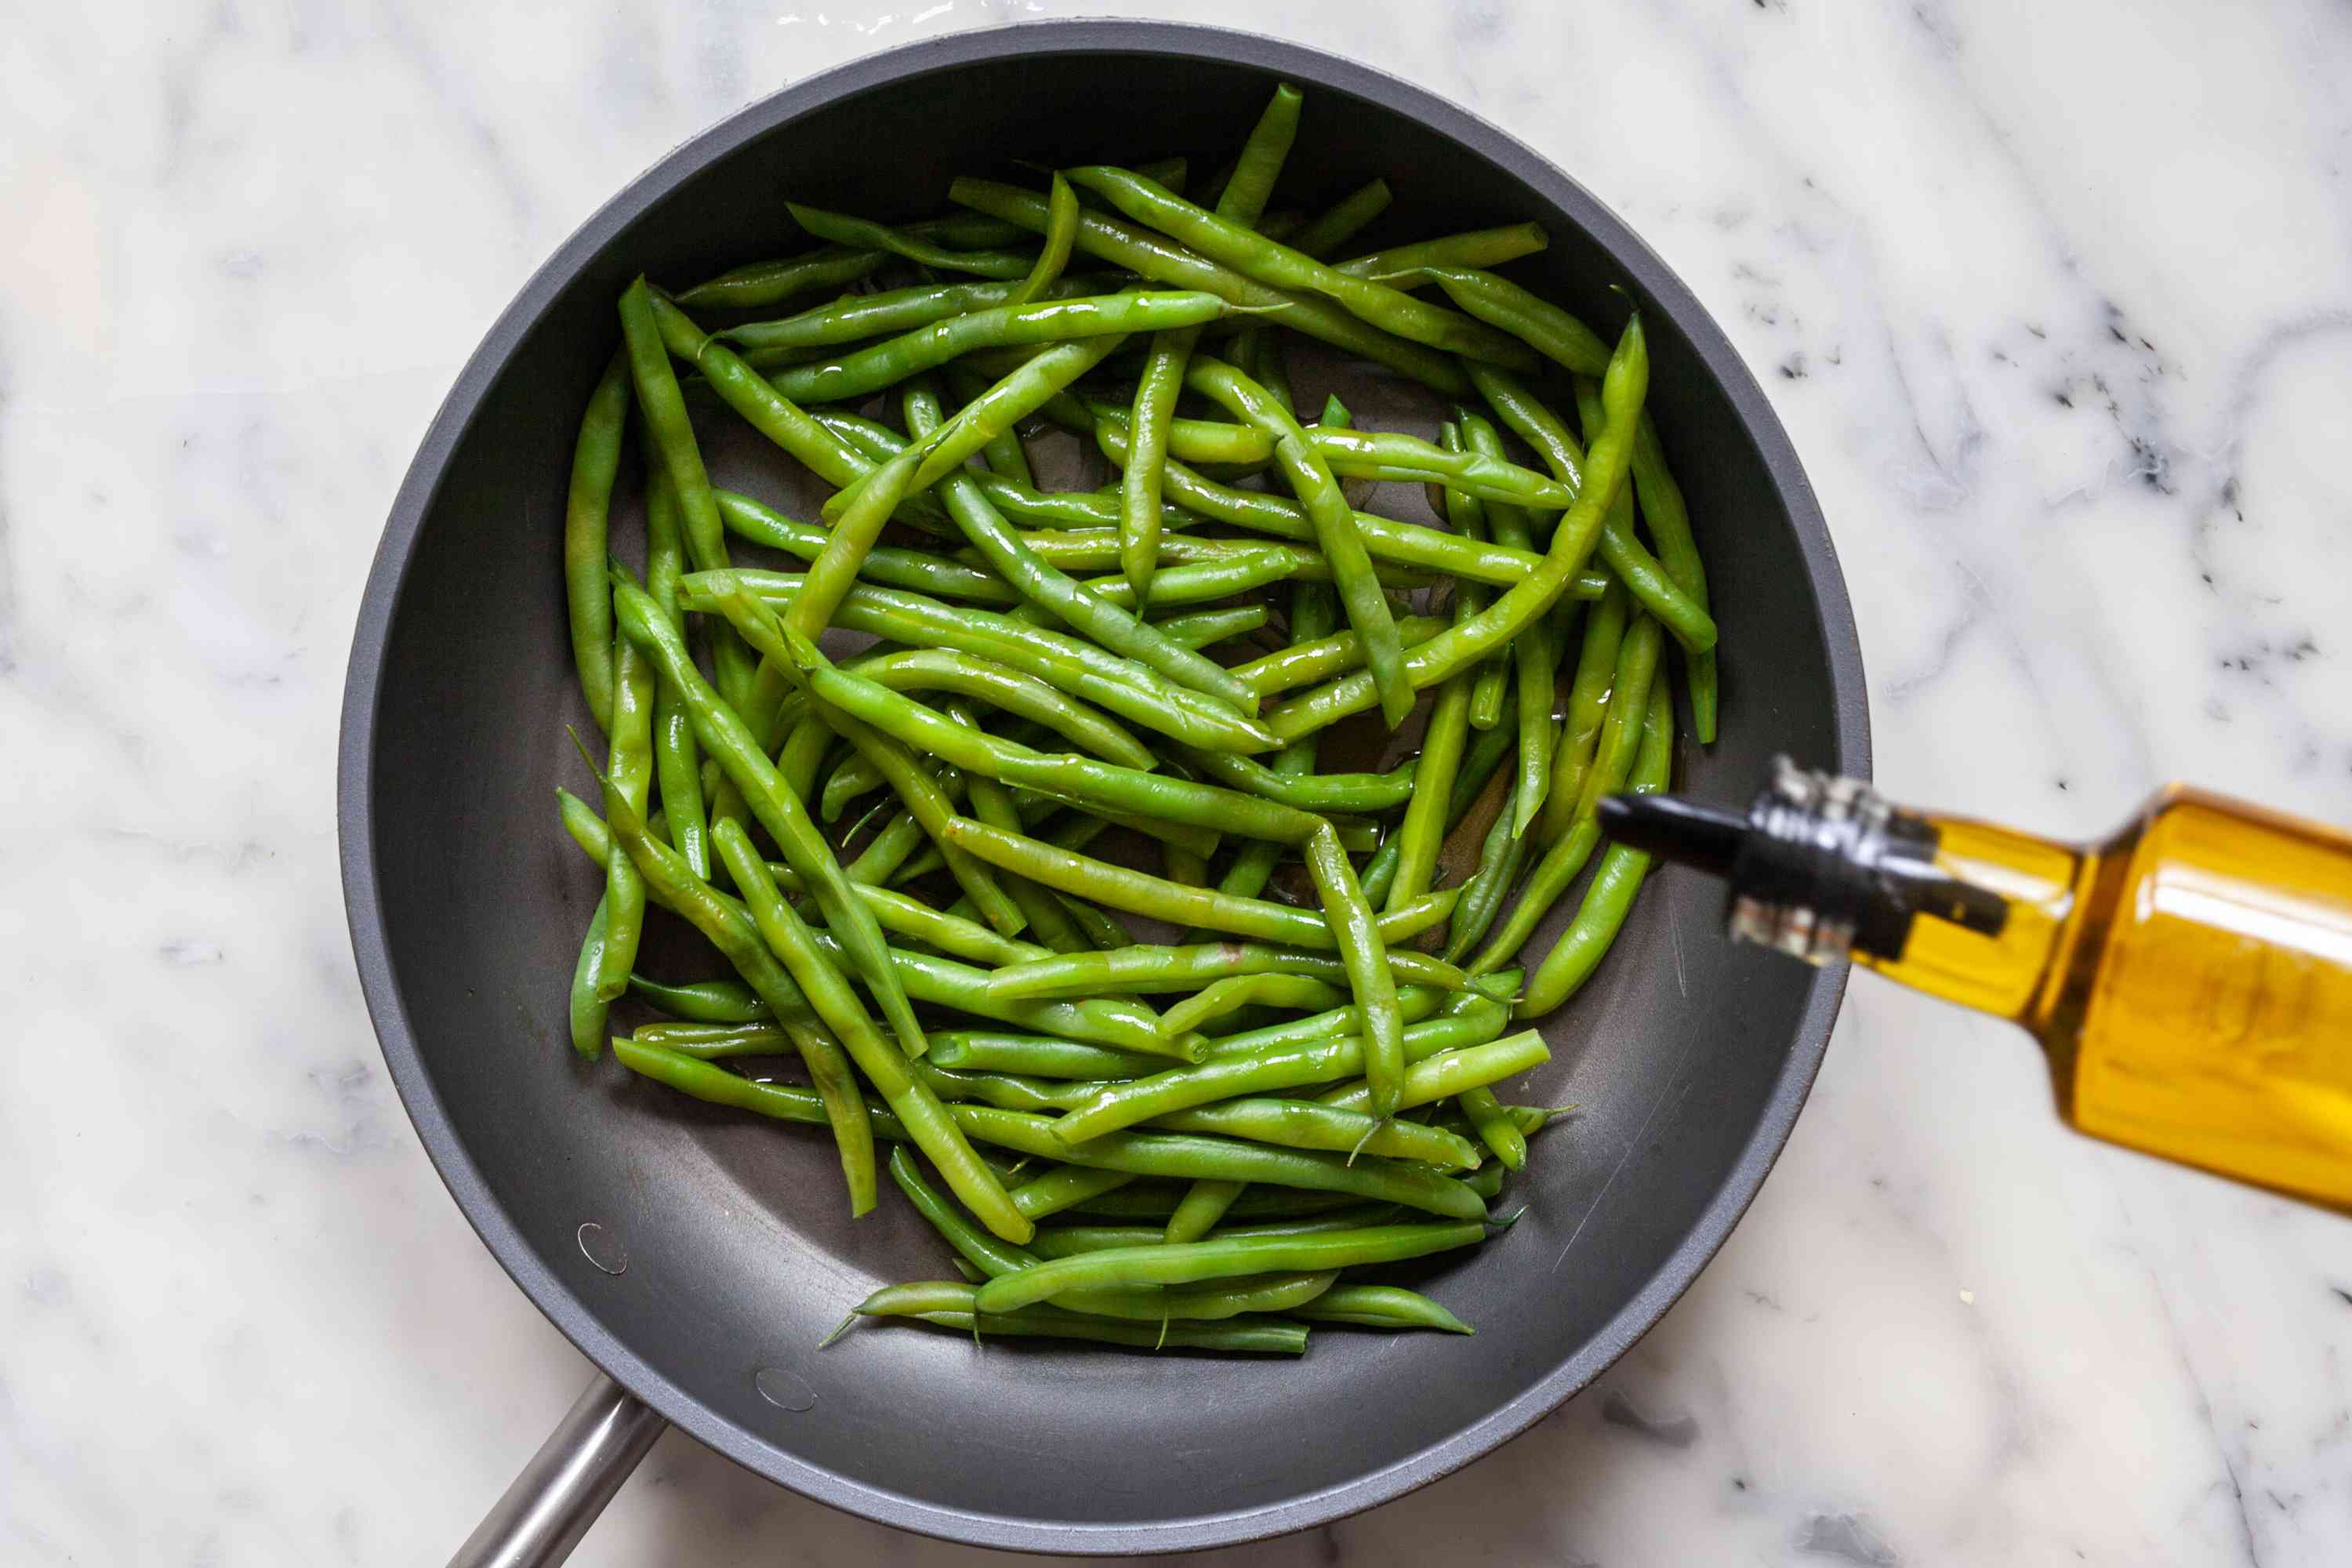 Adding oil to green beans to make Blistered Green Beans with Gochujang.